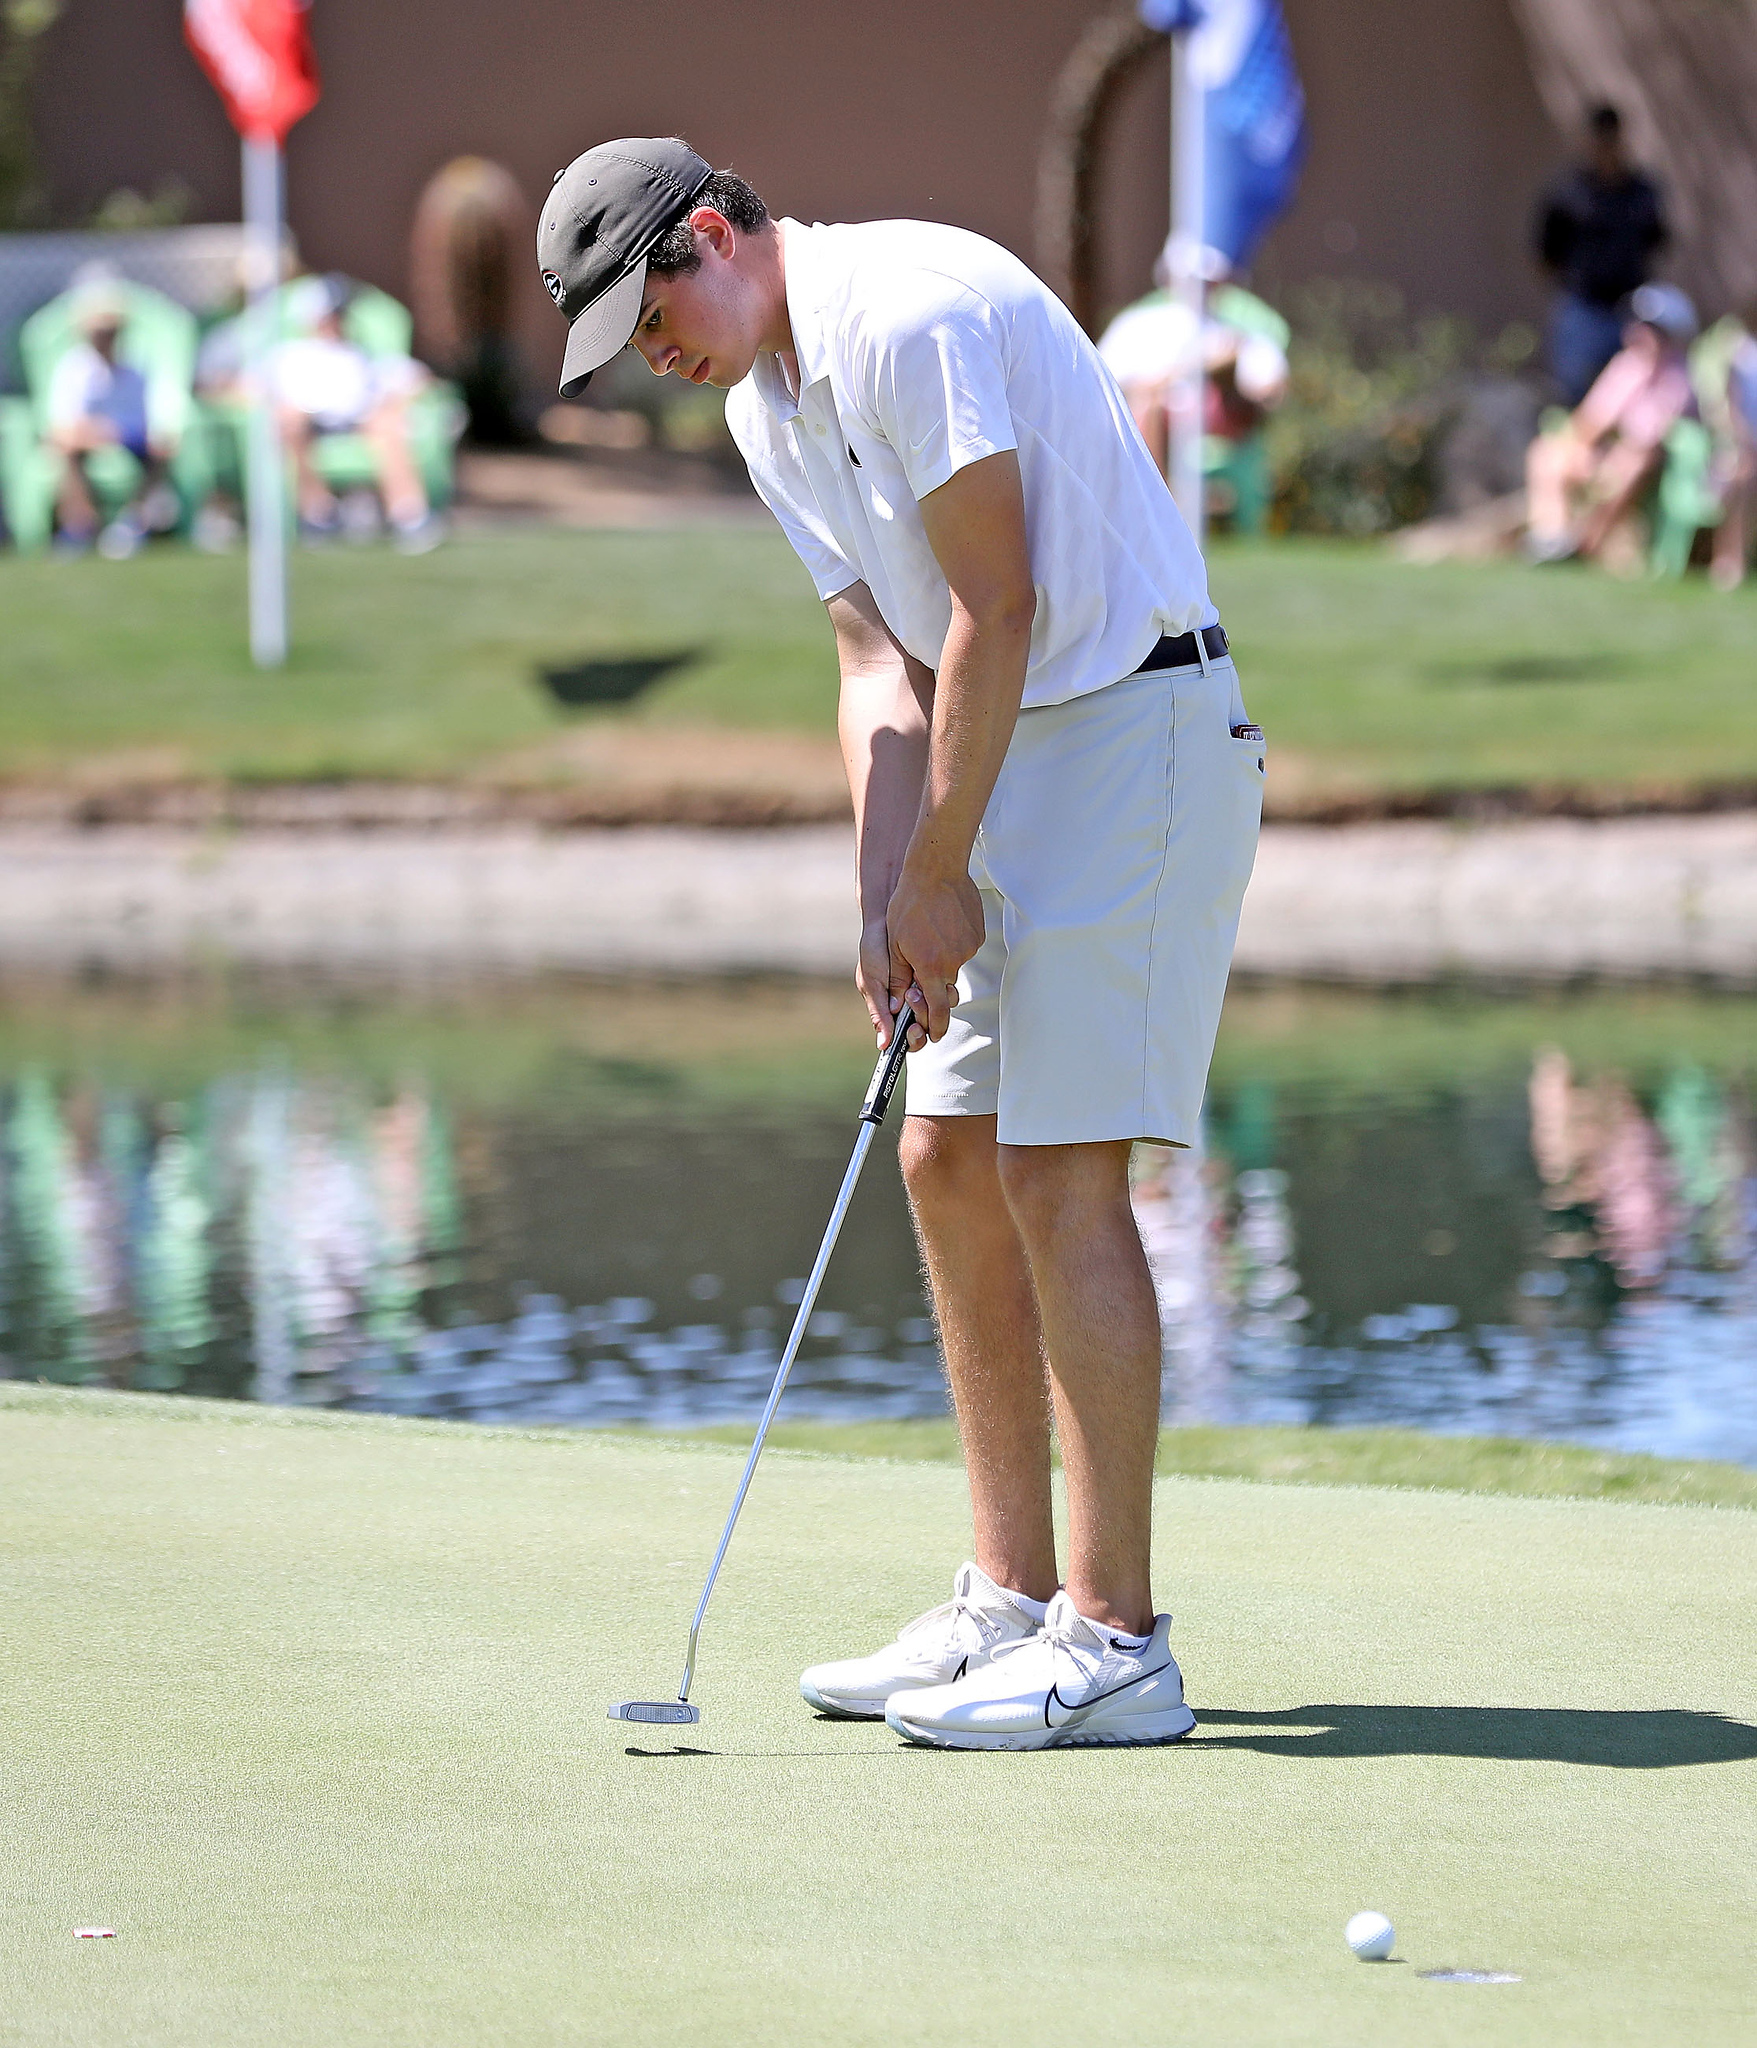 Georgia's Davis Thompson during the second round of the NCAA Championships at Grayhawk Golf Club in Scottsdale, Ariz., on Saturday, May 29, 2021. (Photo by Steven Colquitt)